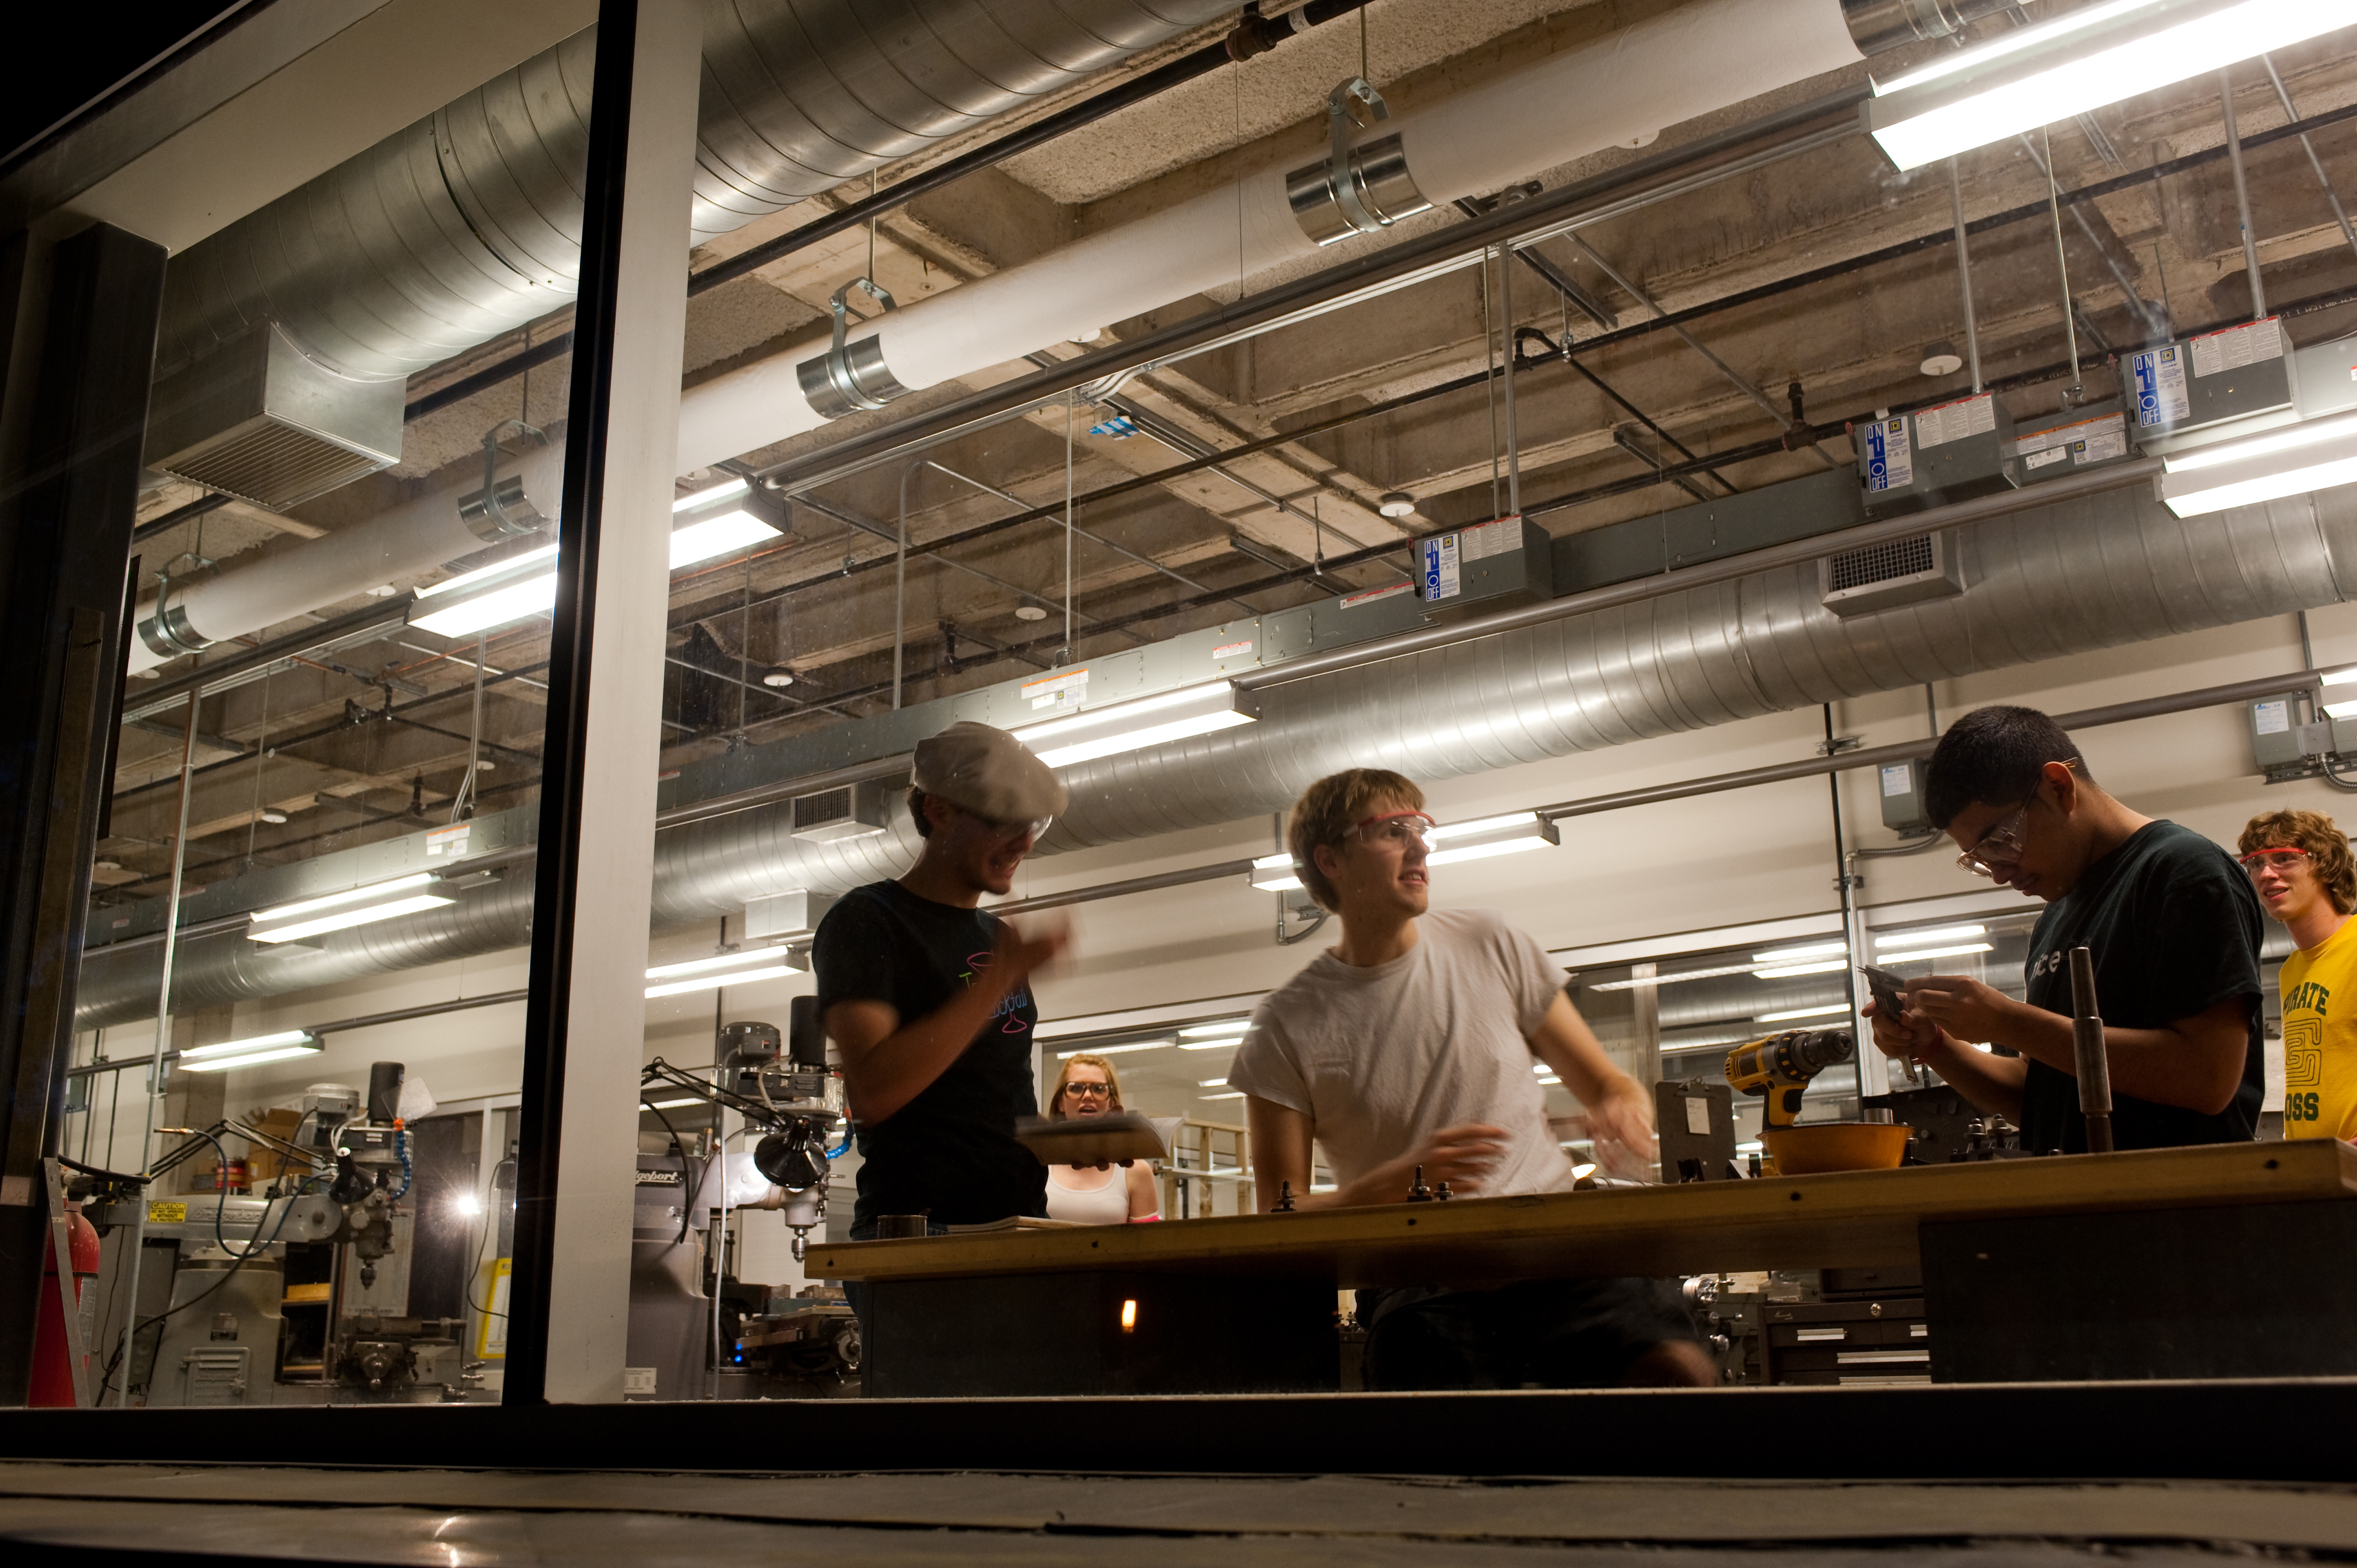 Oshman Engineering Design Kitchen, Rice University